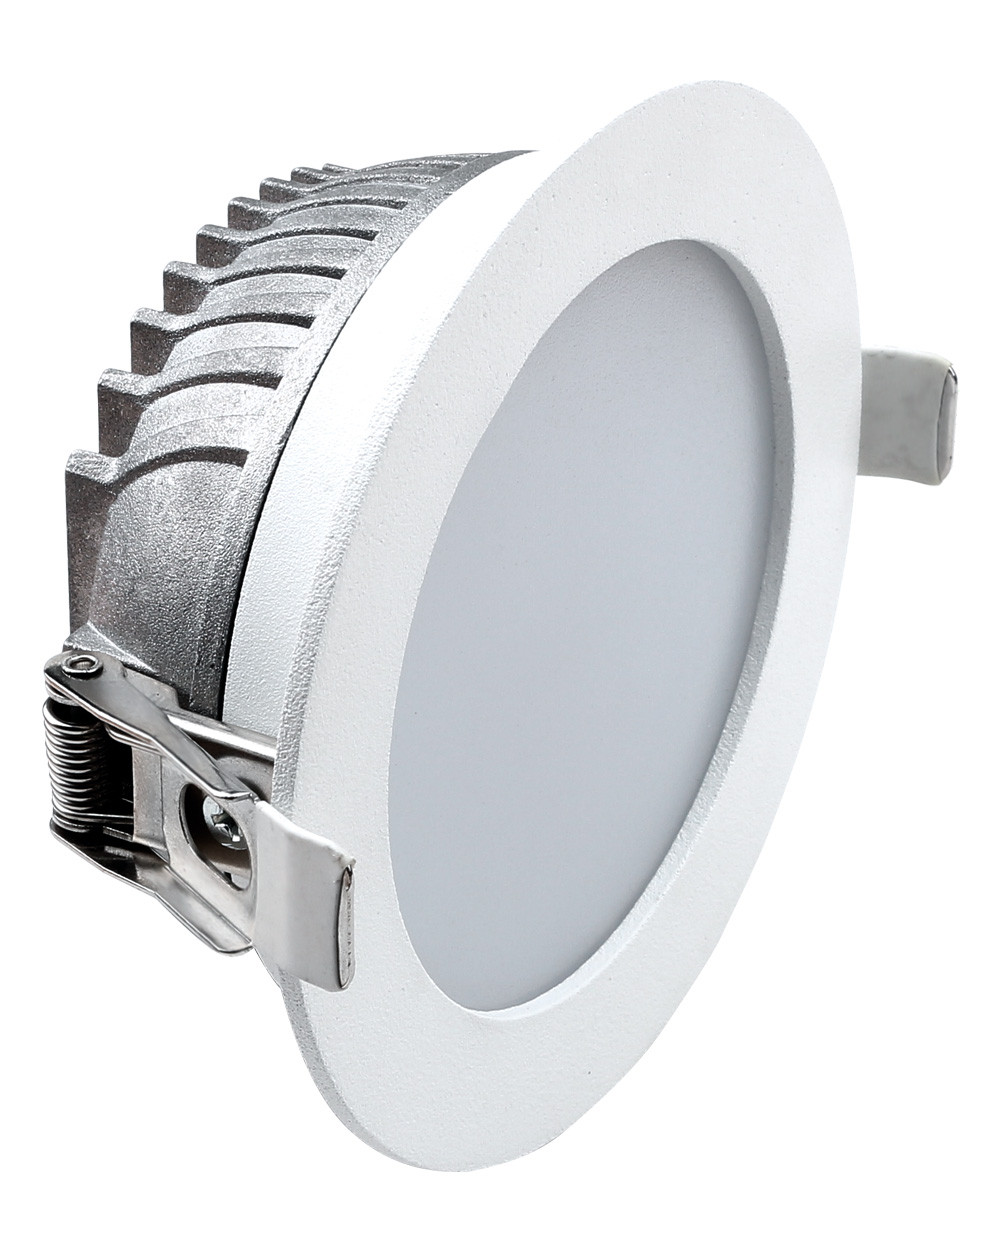 SUNSHINE 6W 2 Inch SMD Led Downlight - AL.240